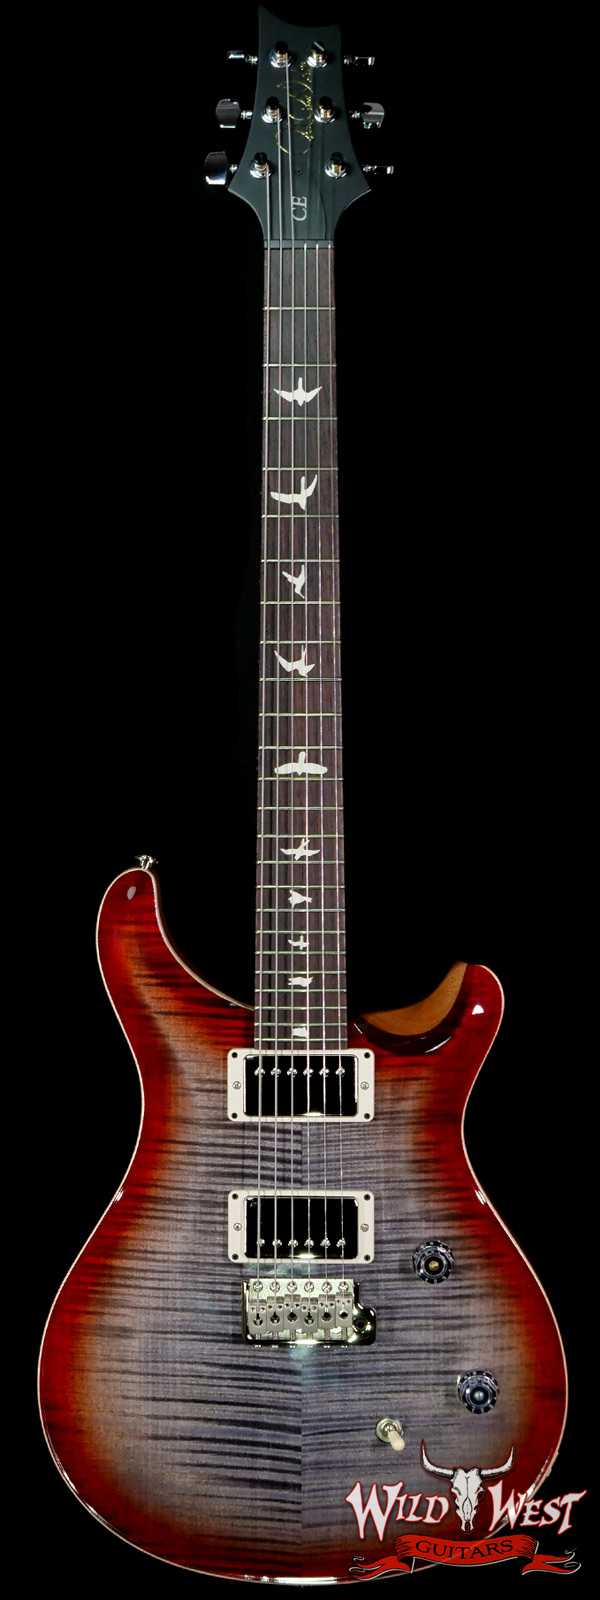 PRS Wild West Guitars Special Run Flame Top Black Neck CE 24 Faded Gray Black Cherry Burst 318886